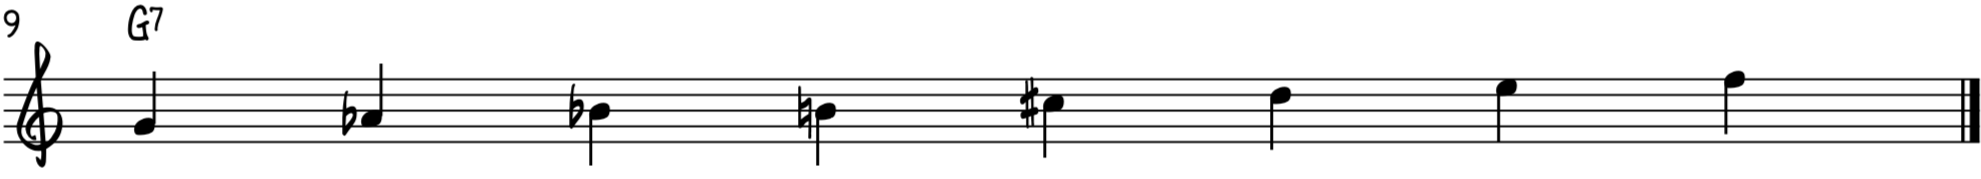 The G dominant diminished scale to solo over G dominant 7th chord